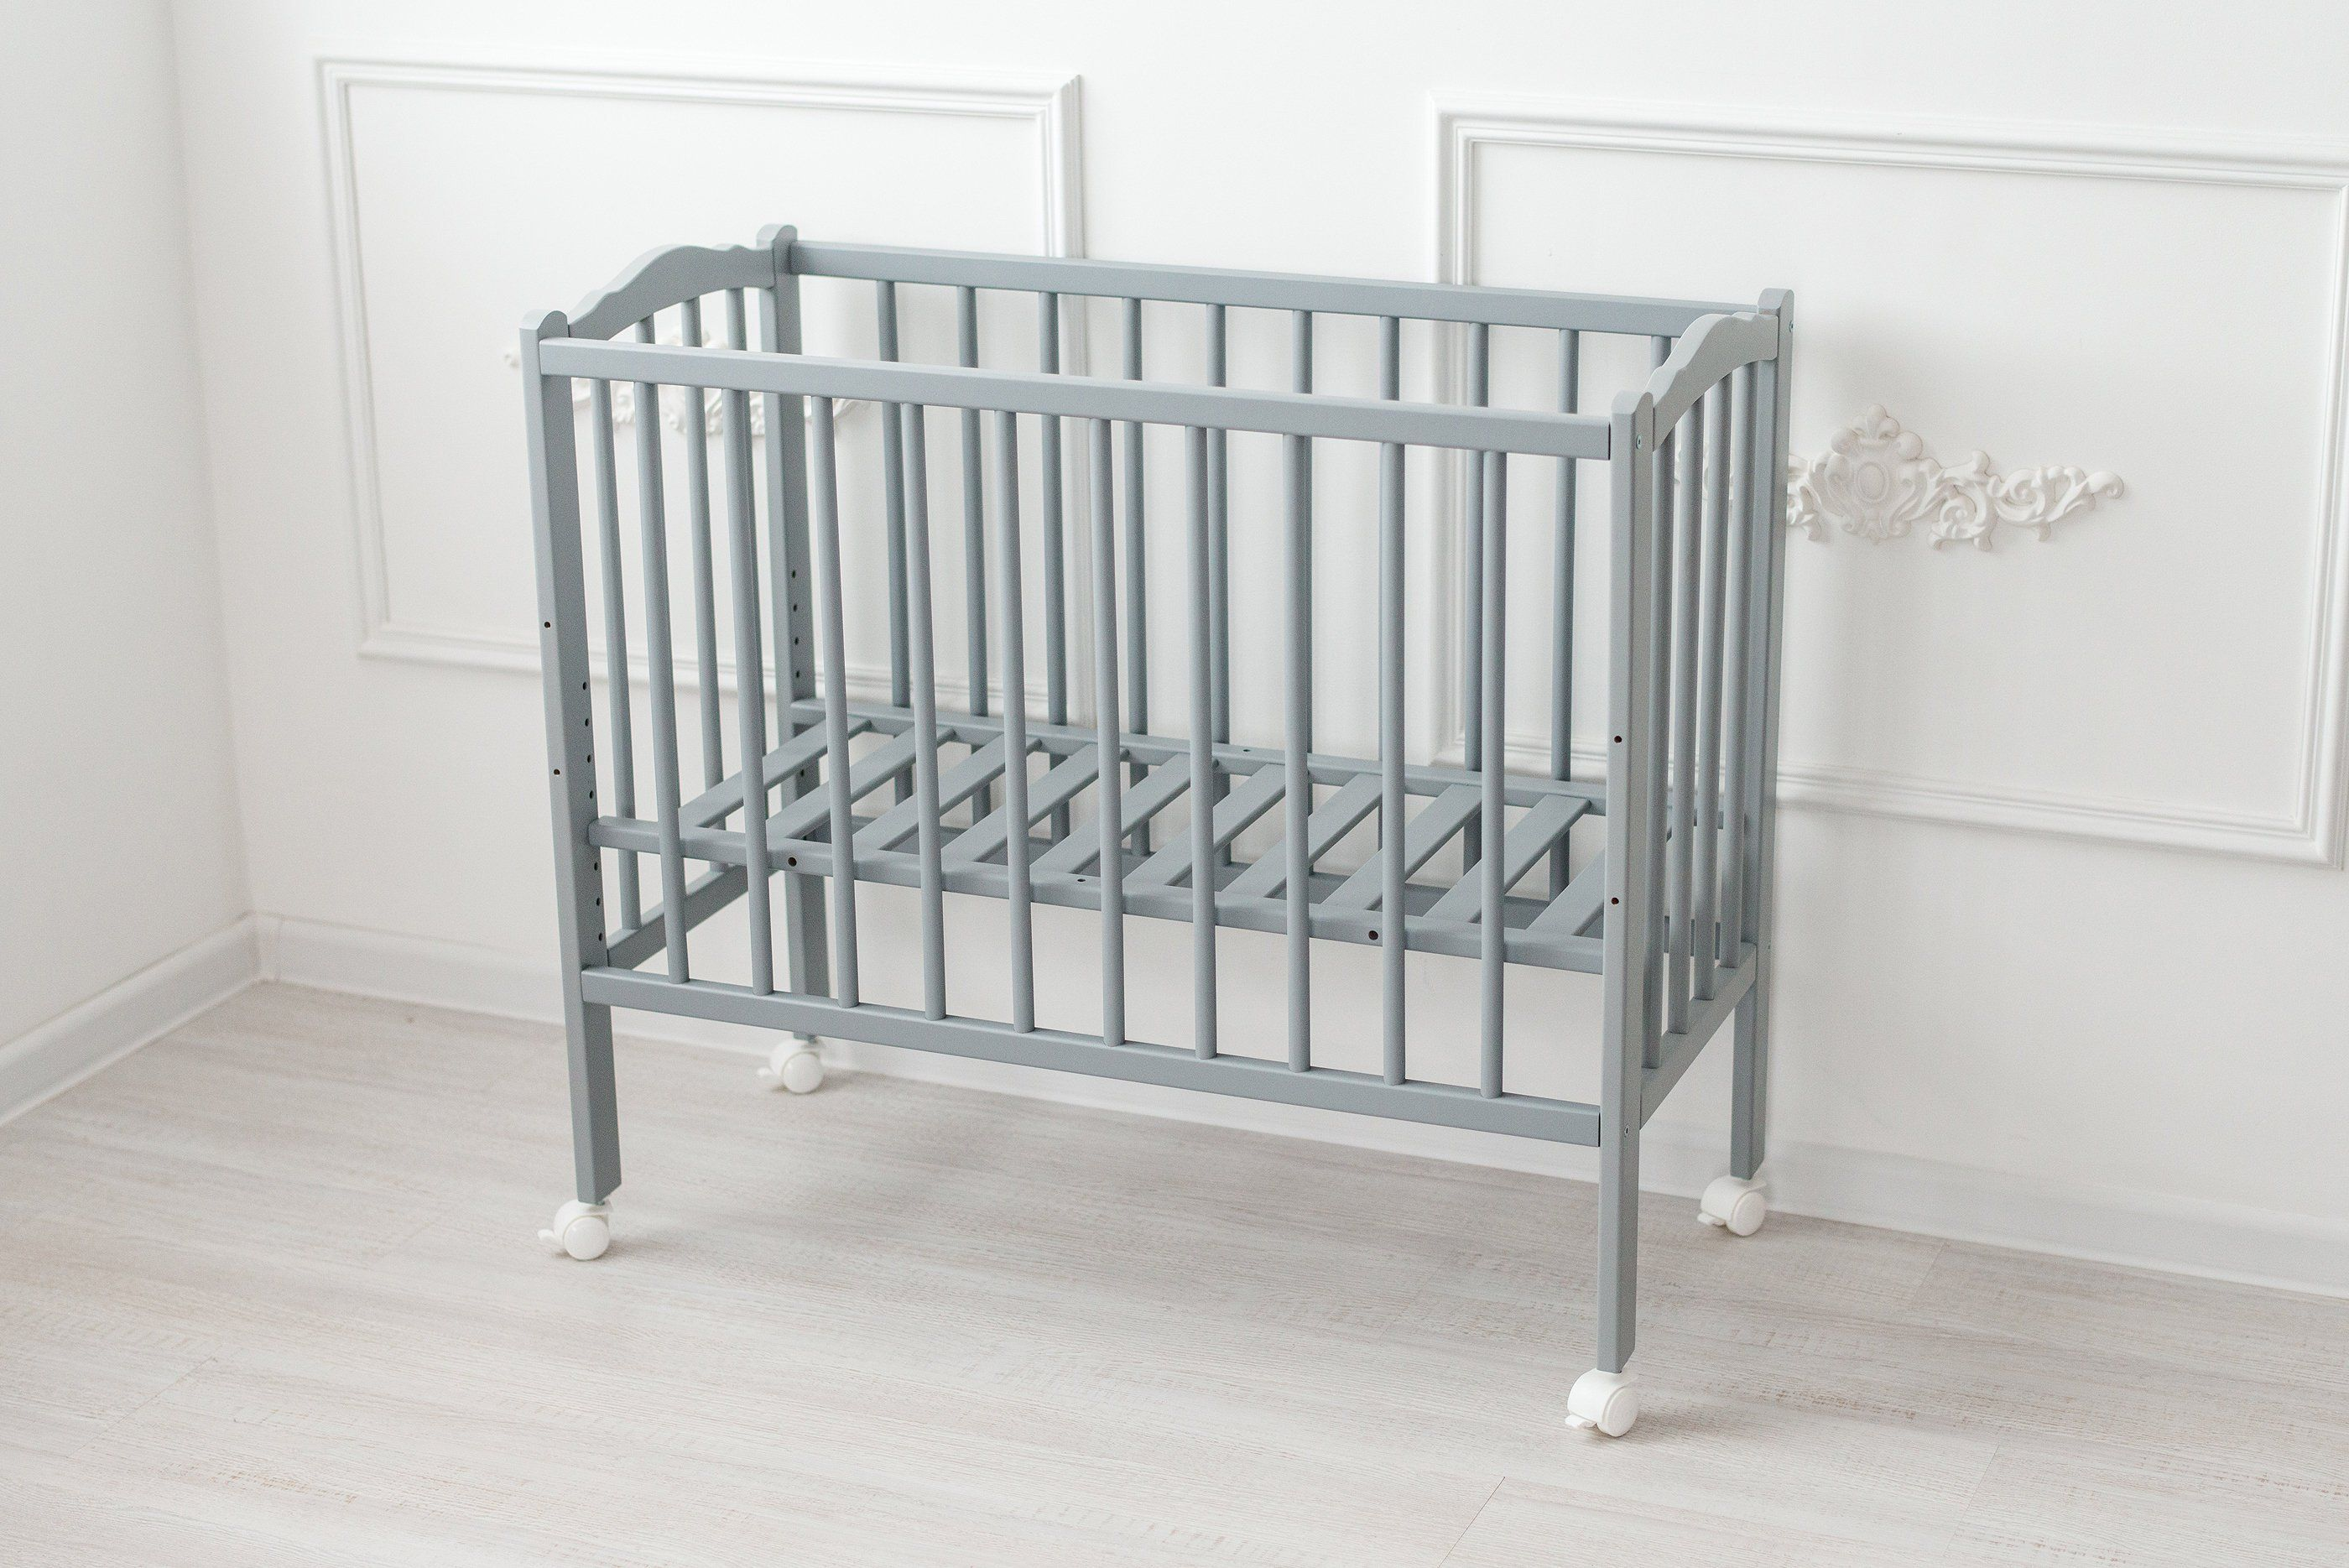 Baby Beistellbettchen Baby Side Bed 2in1 Plus Solid Wood Beech Wood Colour Grey